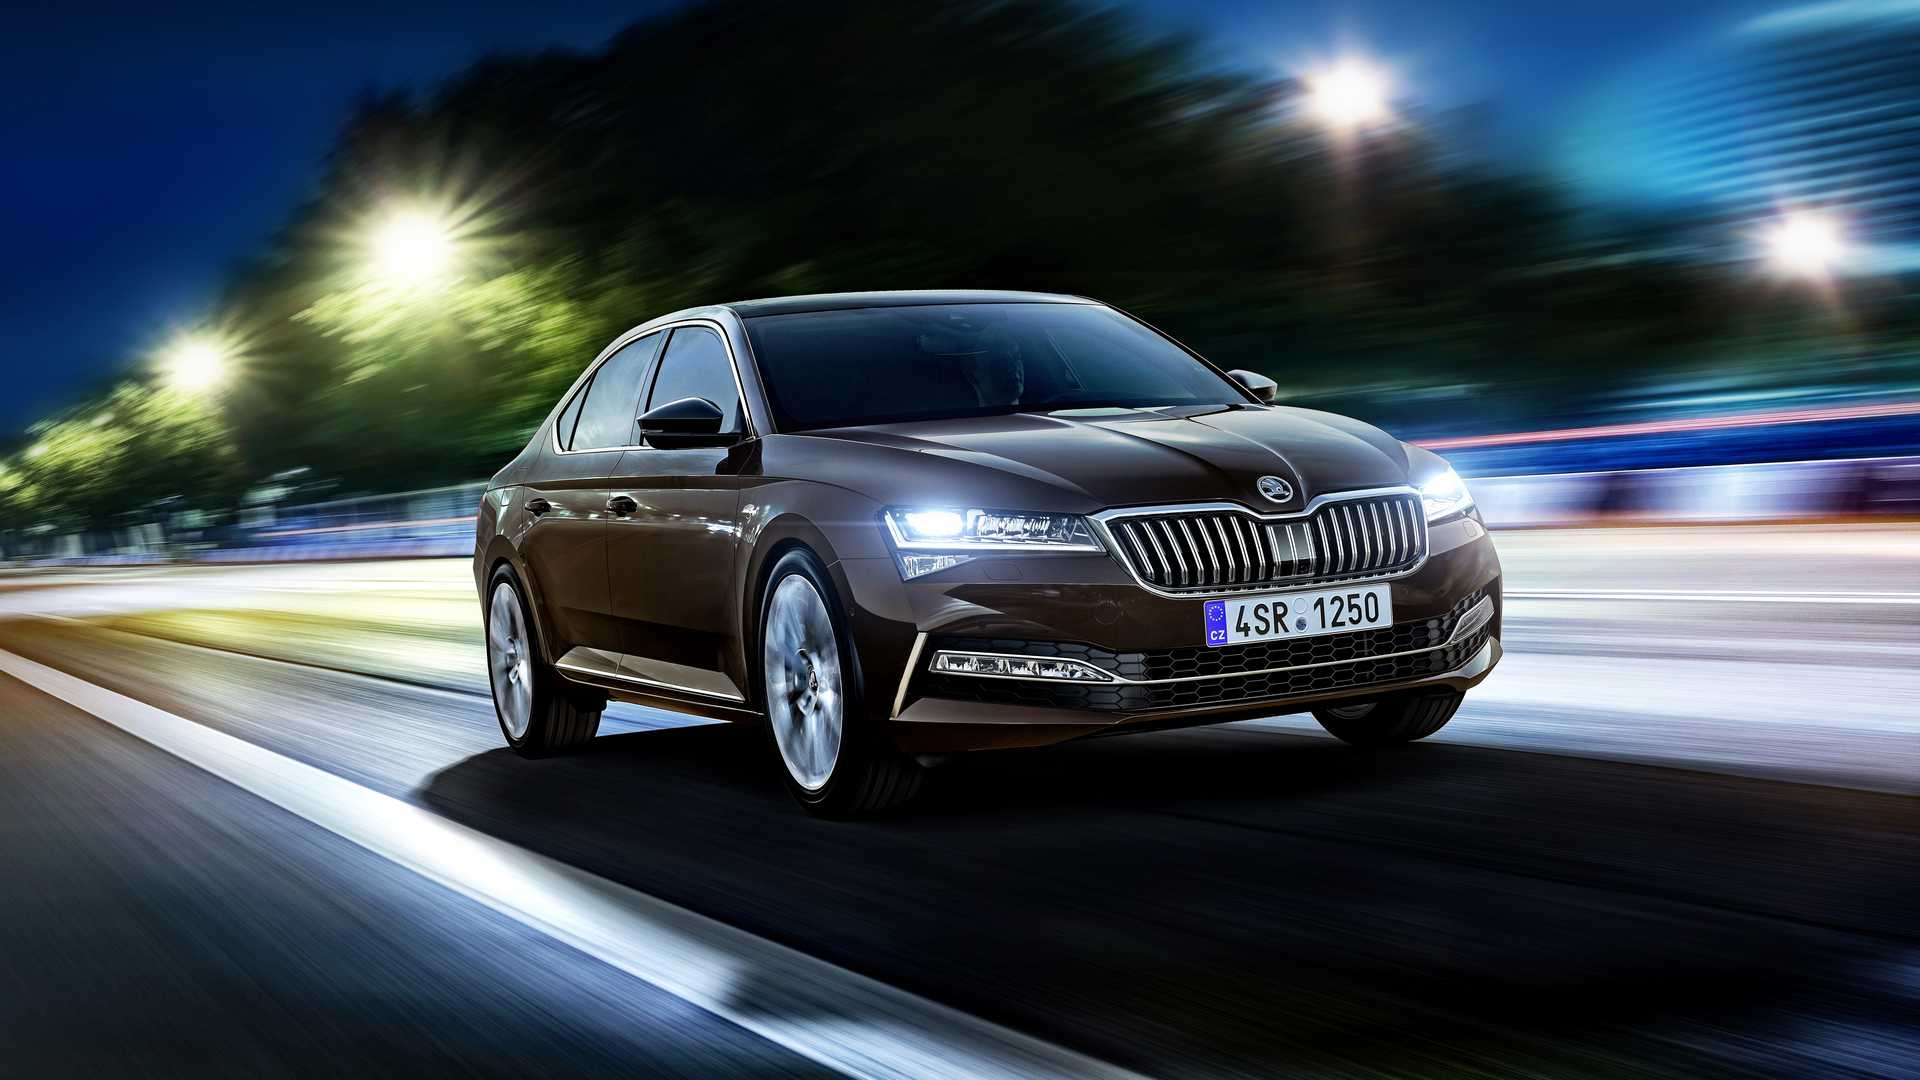 2020-skoda-superb-facelift-6